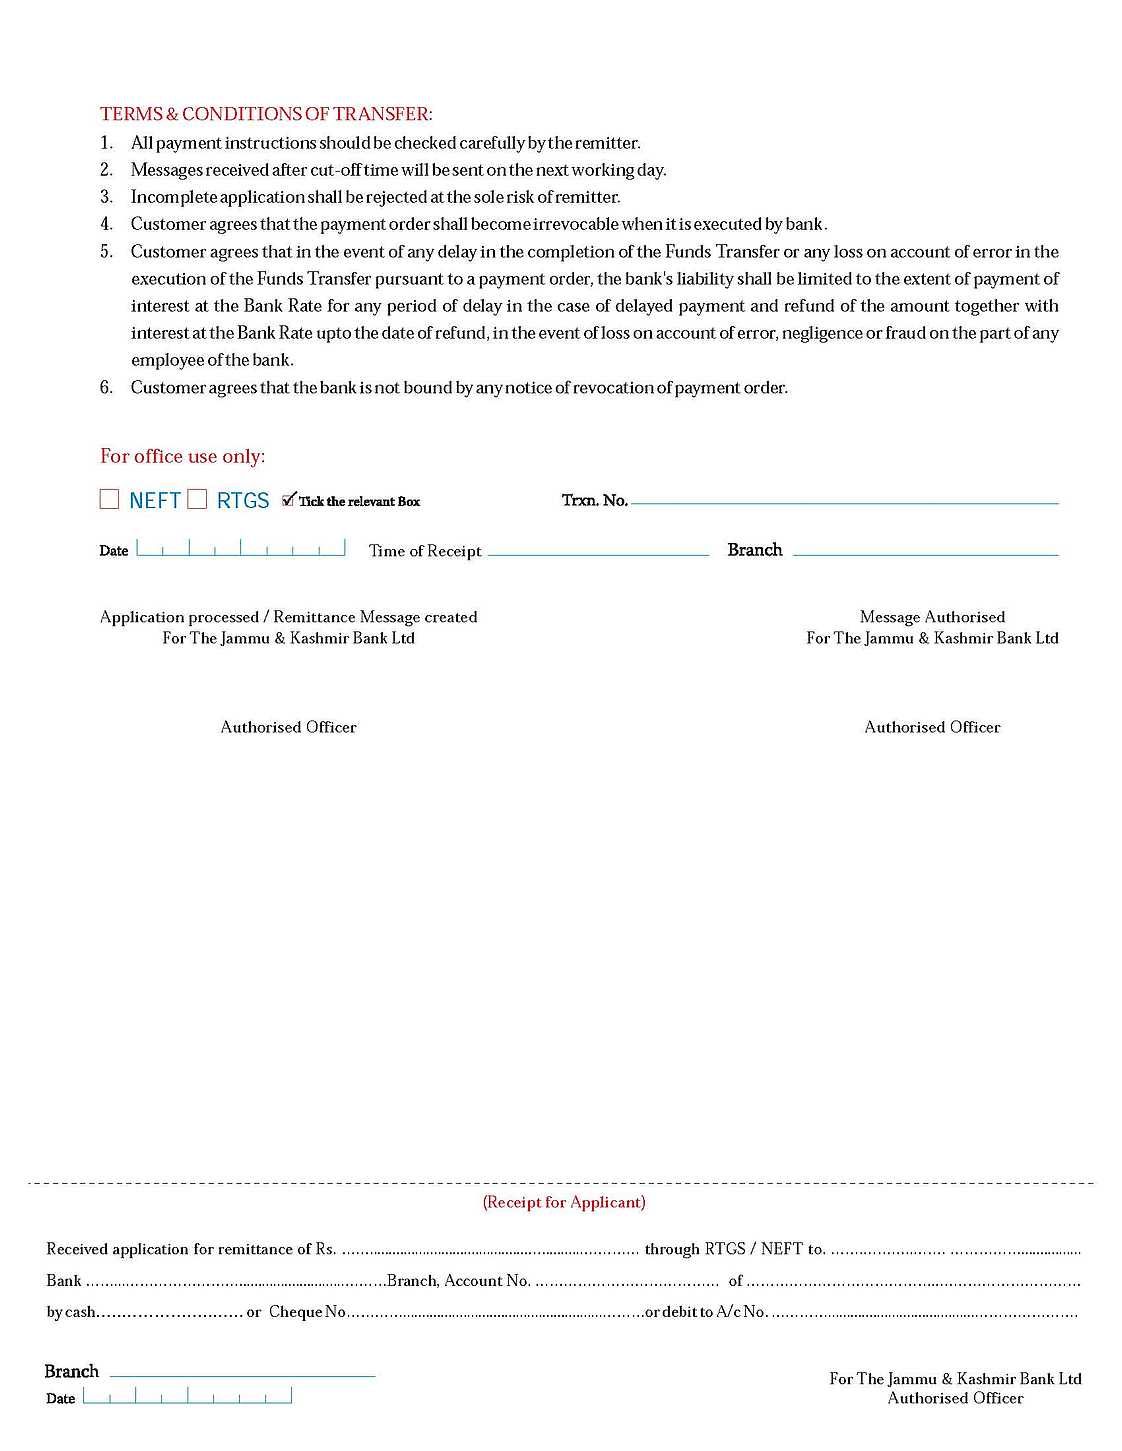 Canara Bank Neft Application Form - The Freddy Files Five Nights At ...